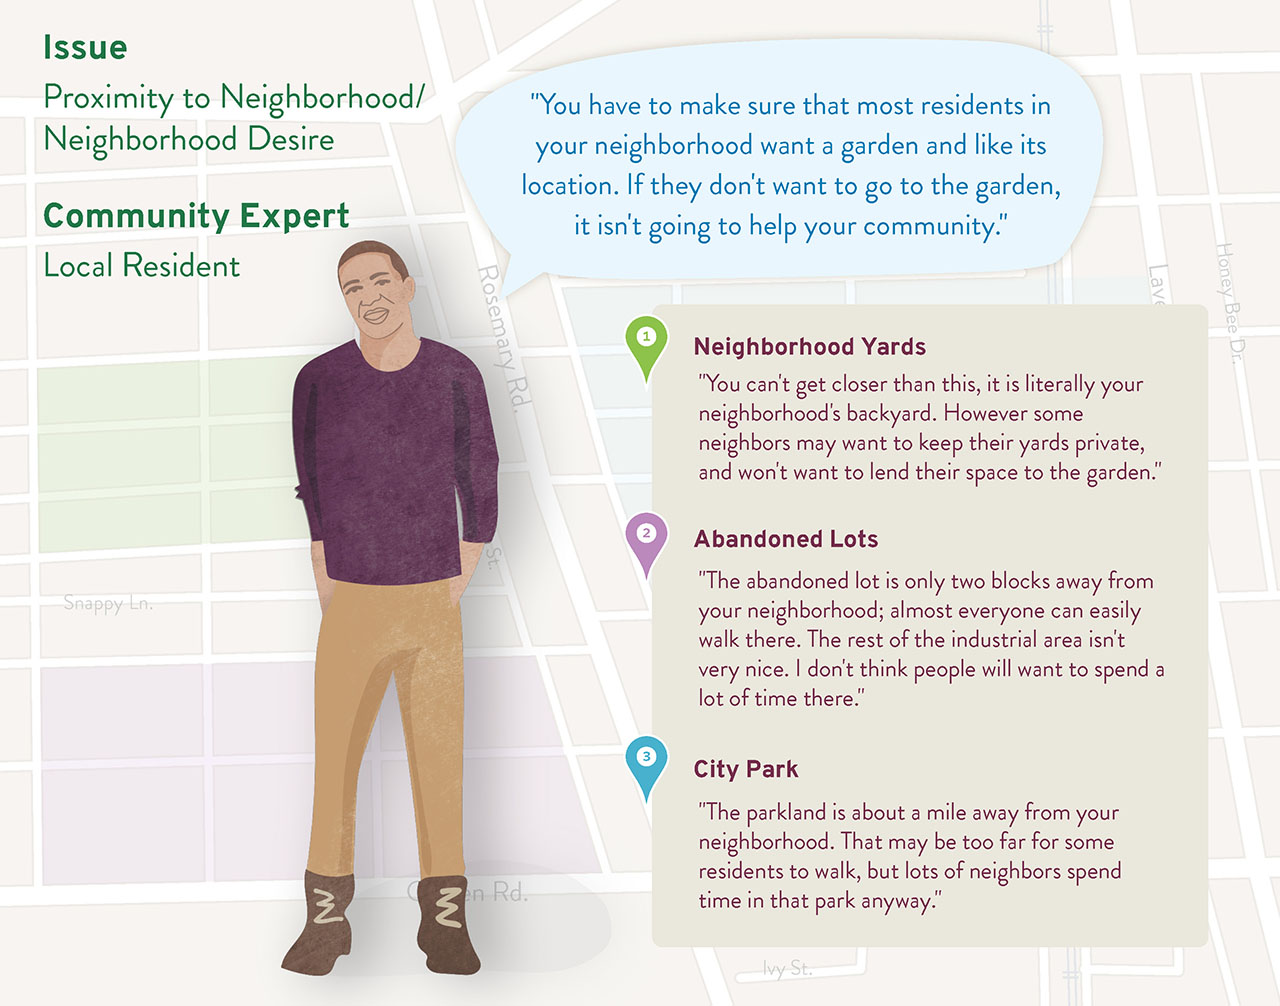 Community Expert Card: Local Resident